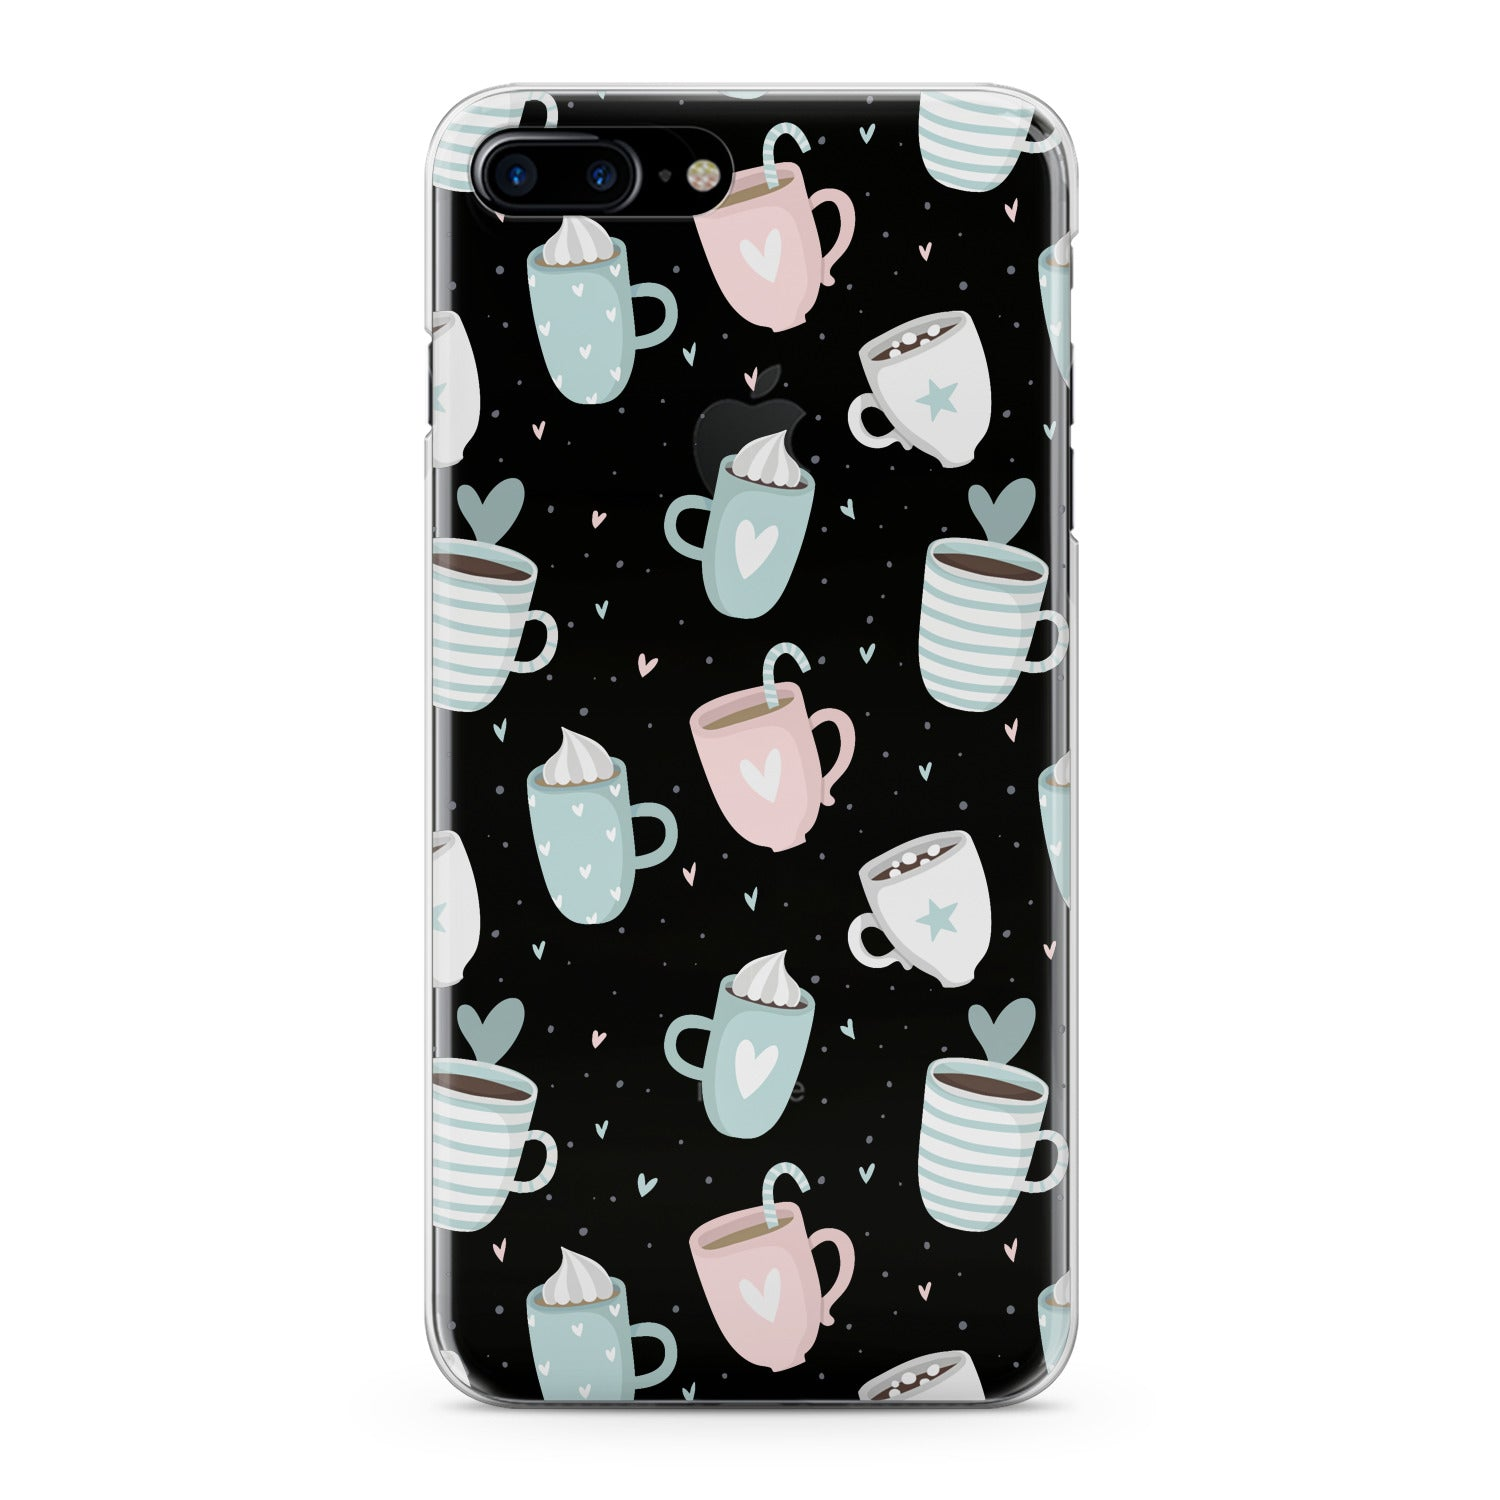 Lex Altern Pastel Cups Cappuccino Phone Case for your iPhone & Android phone.